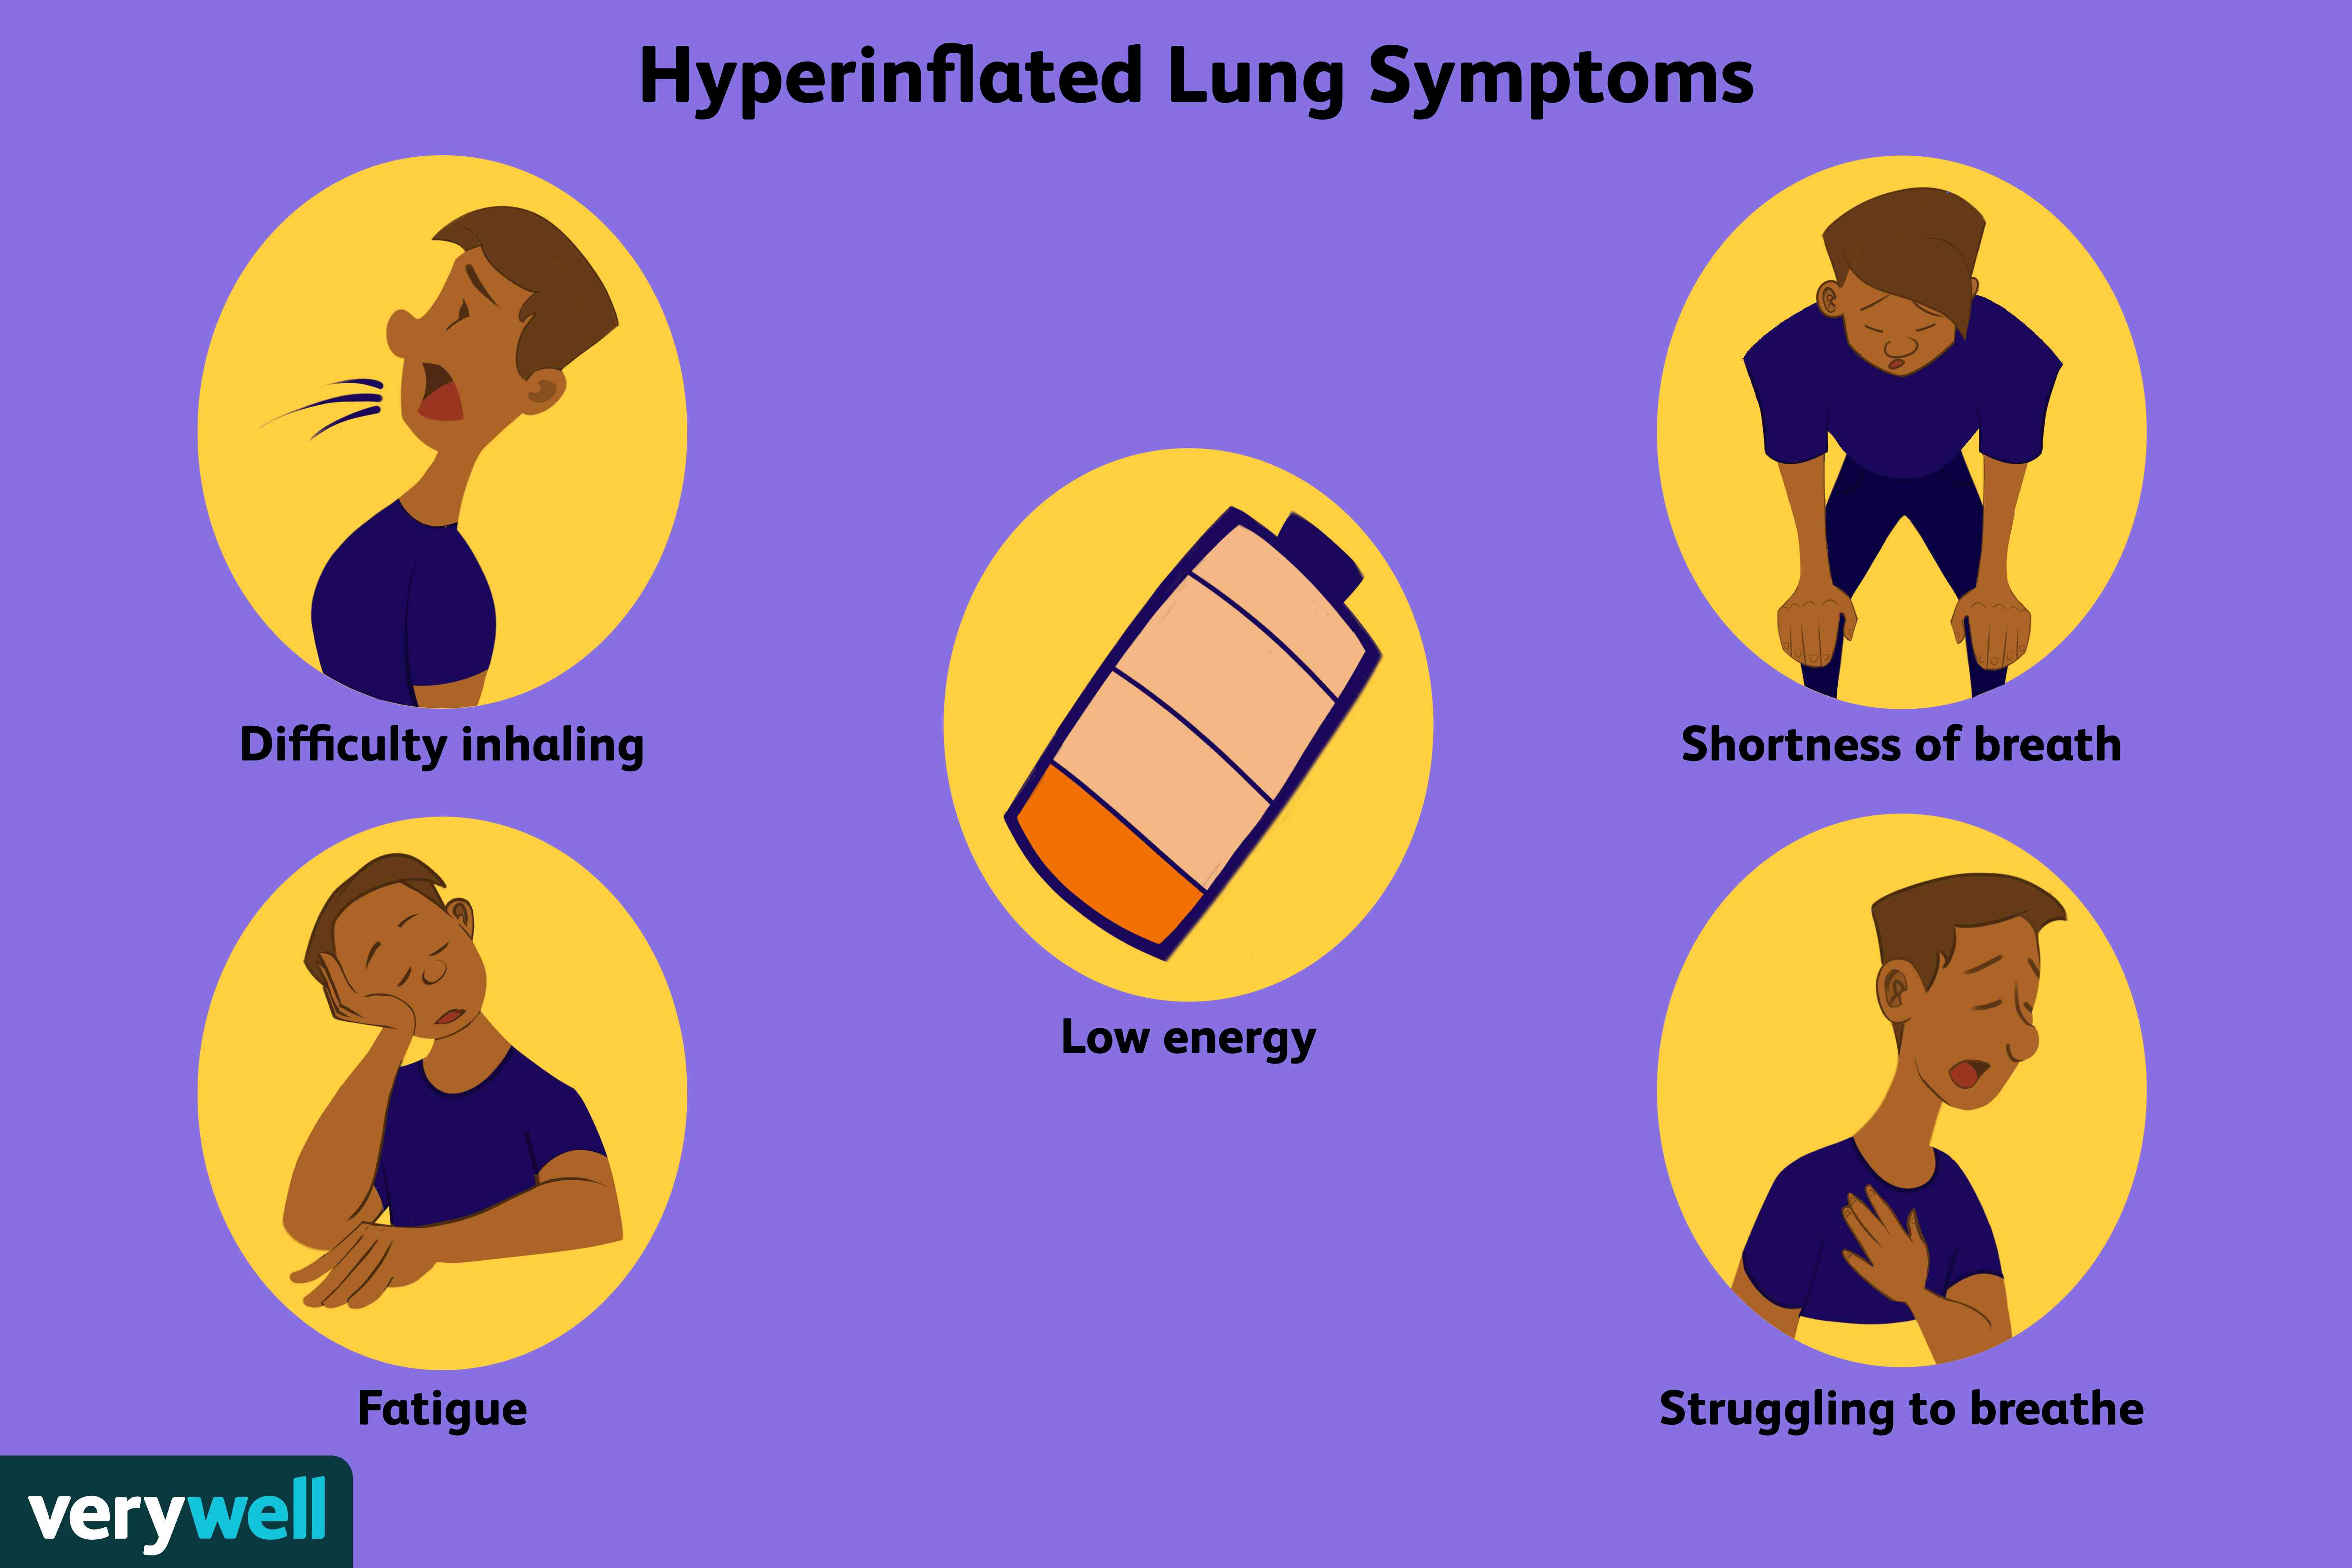 Hyperinflated Lung Symptoms